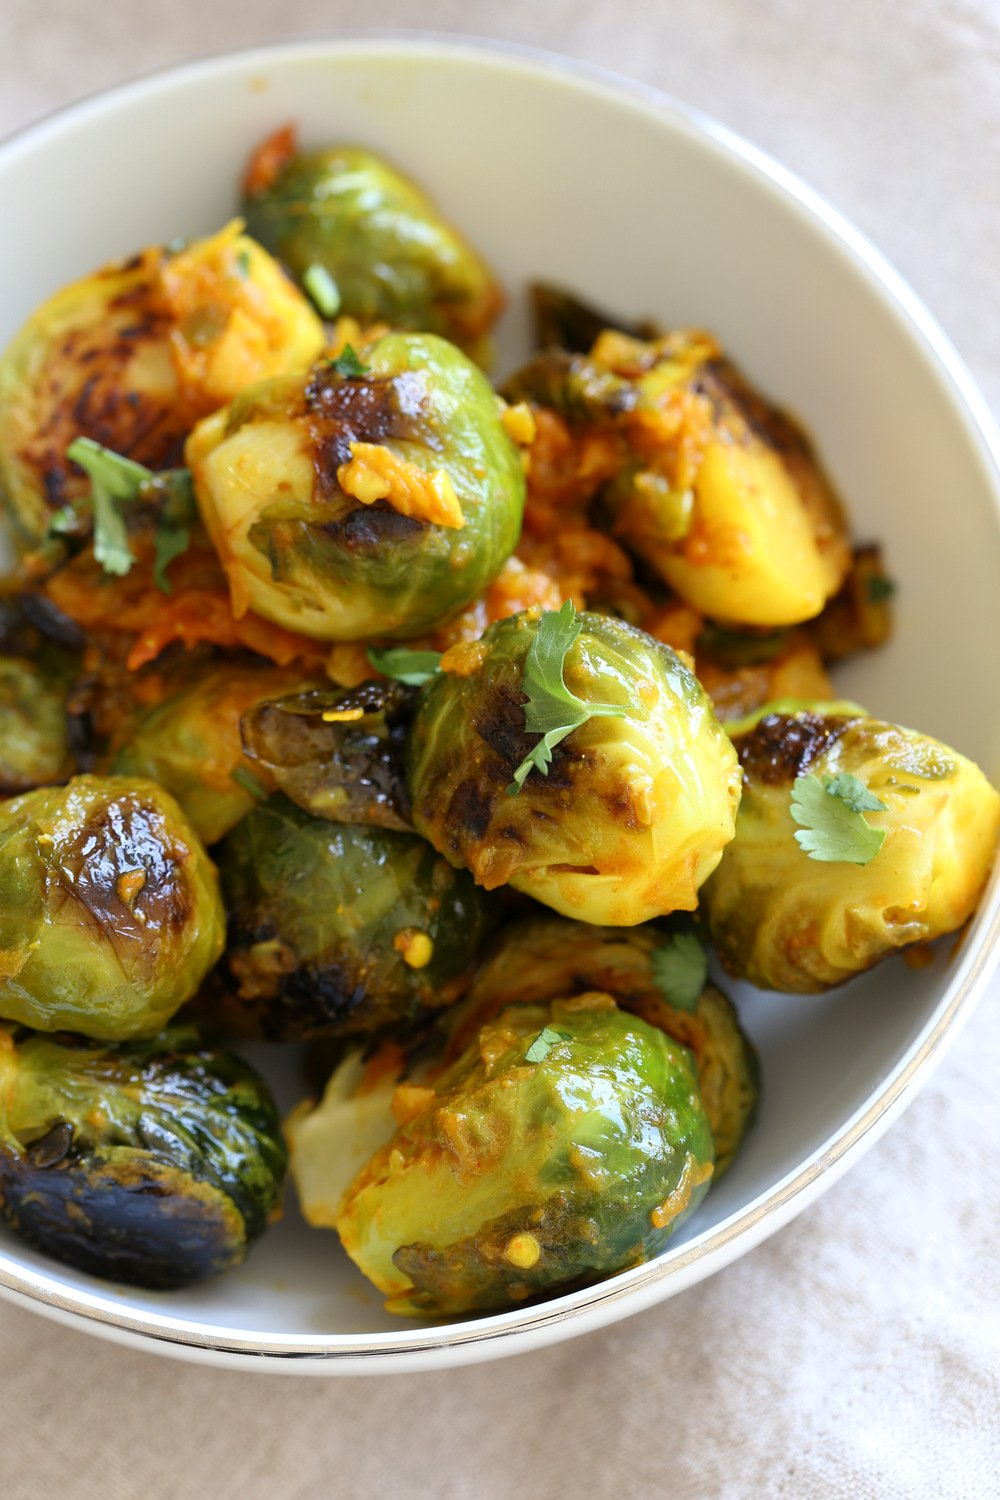 Our Curried Caramelized Brussels Sprouts in White Bowl